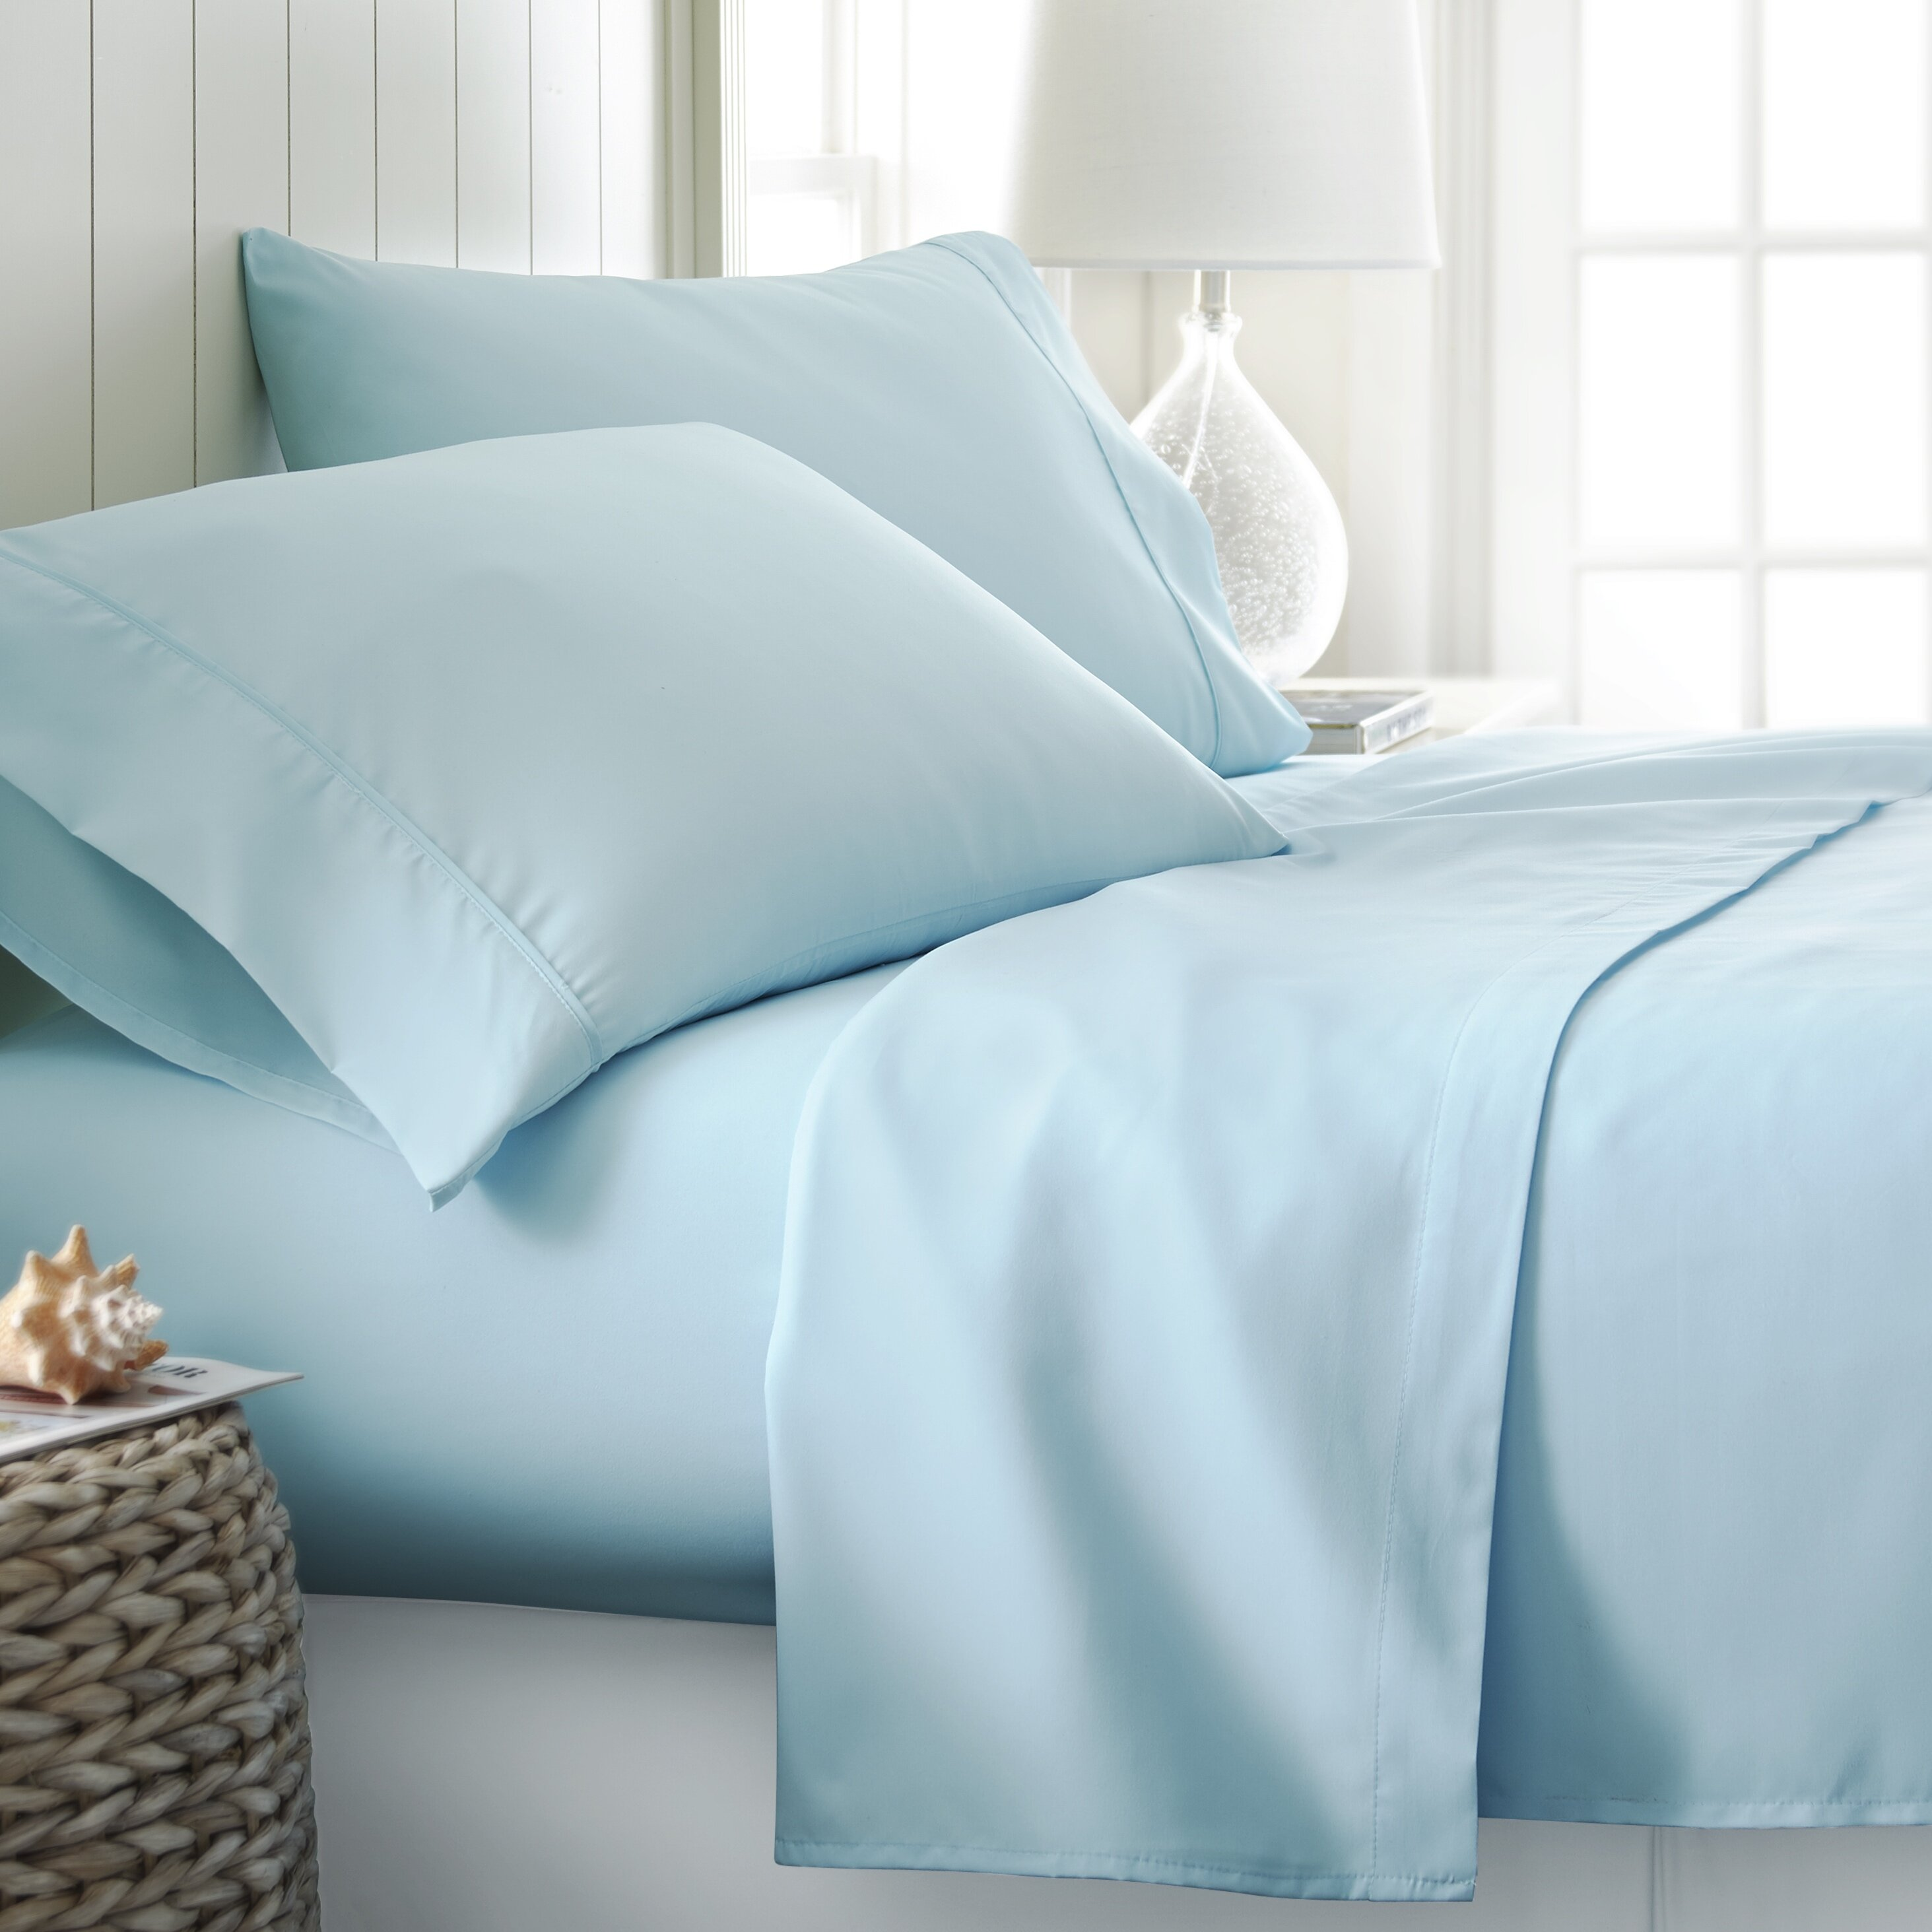 should i tuck in the top bed sheet underneath my mattress nostupidquestions. Black Bedroom Furniture Sets. Home Design Ideas